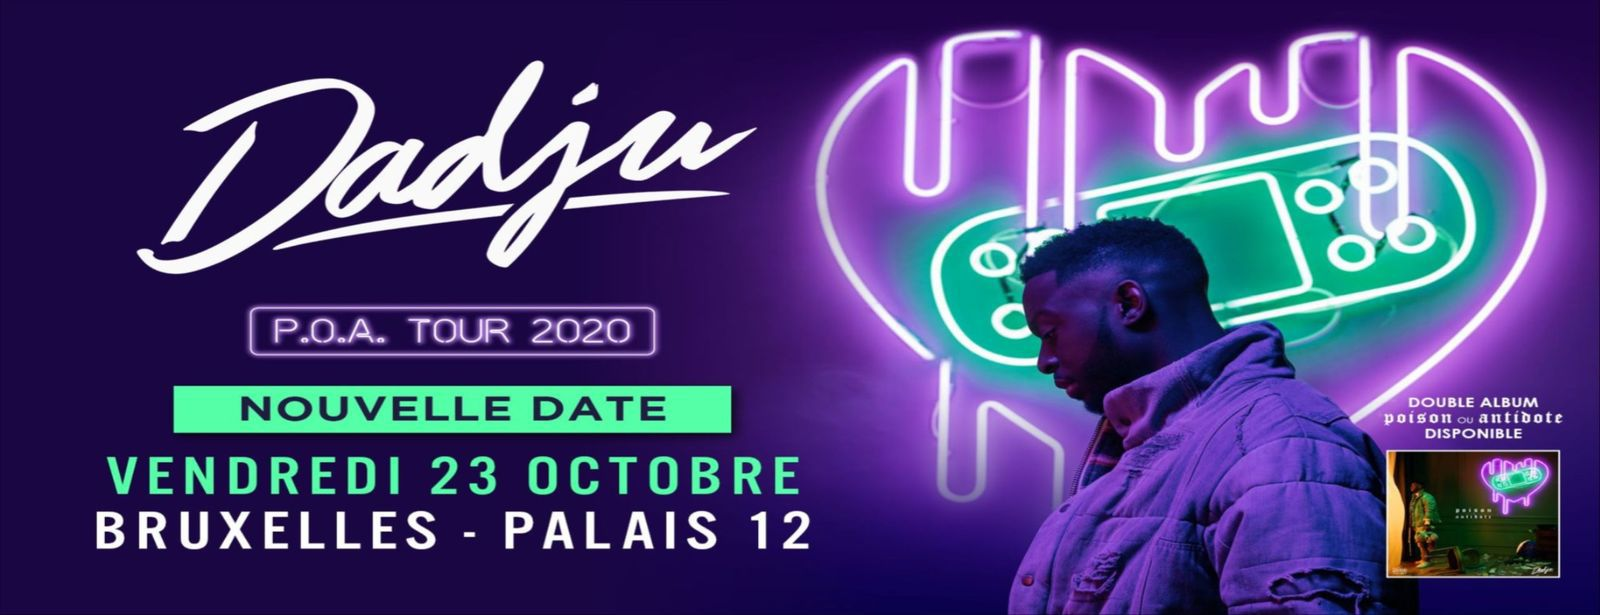 https://www.palais12.com/nl/events/detail/dadju-1